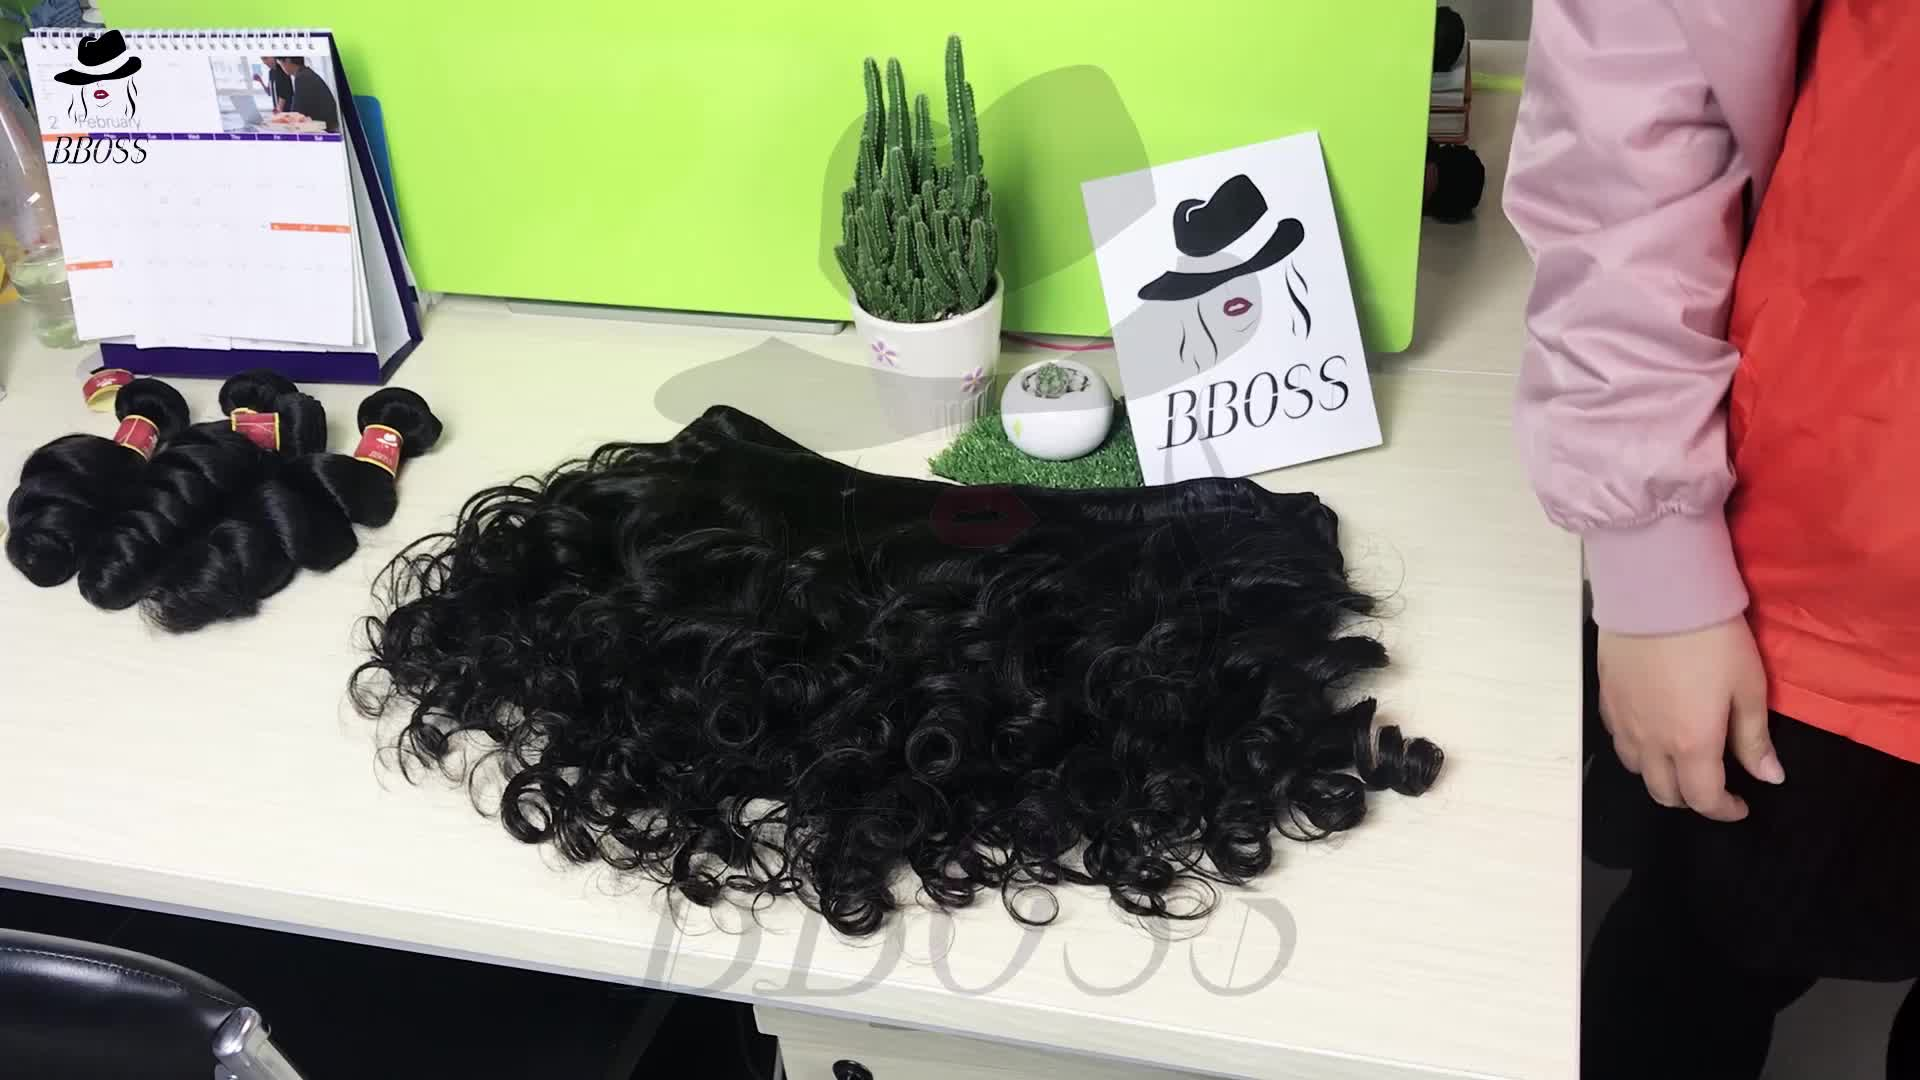 Cheap hair weave brazilian human microring hair extension,permanent hair hairpieces,raw indian curly hair unprocessed virgin